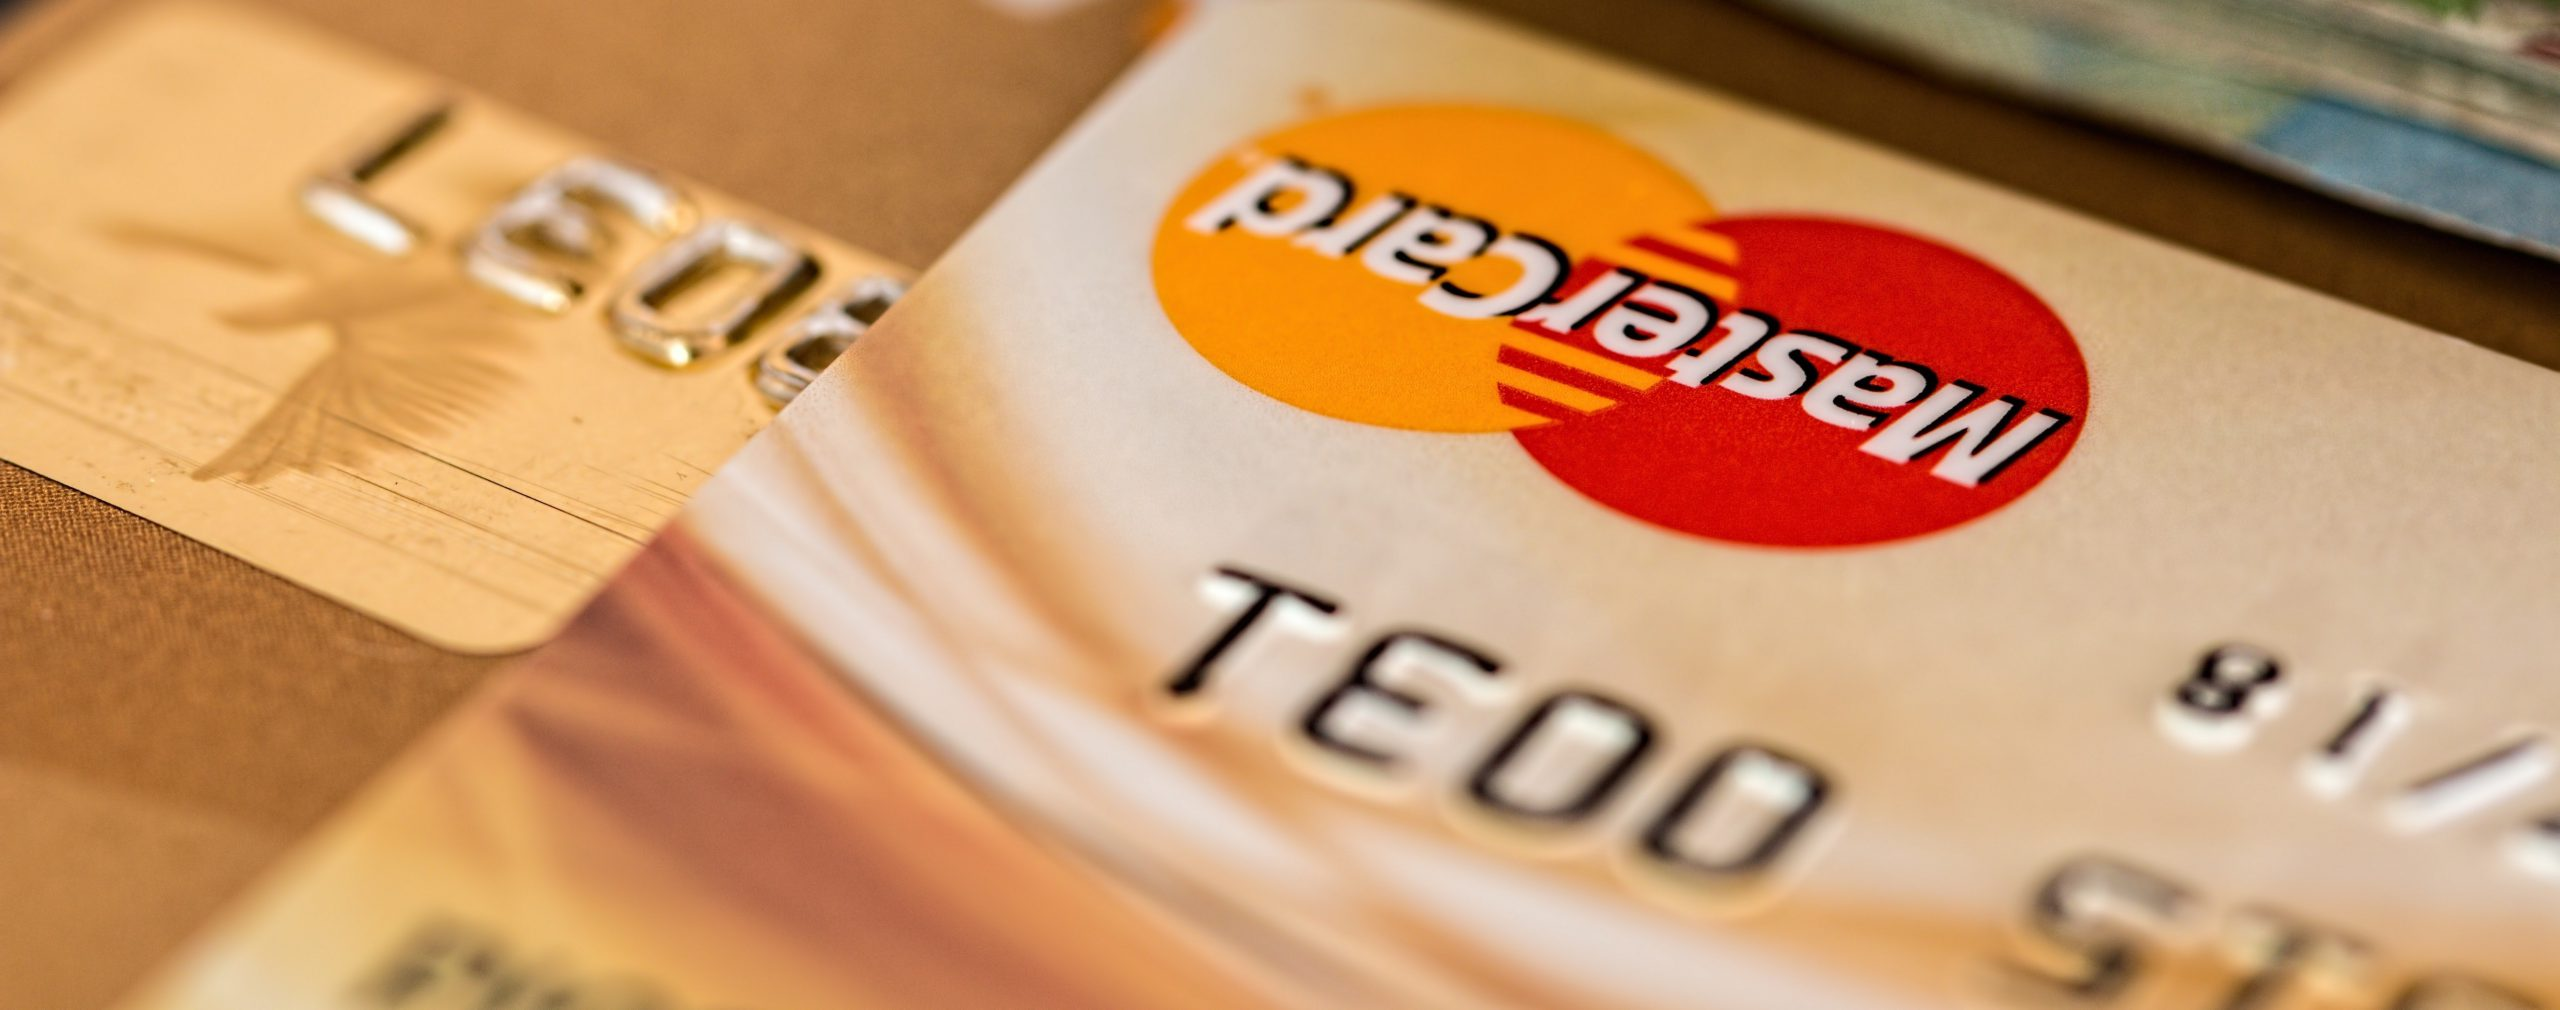 B4B Payments celebrate global expansion, E-money approval and becoming a Mastercard Principal Member